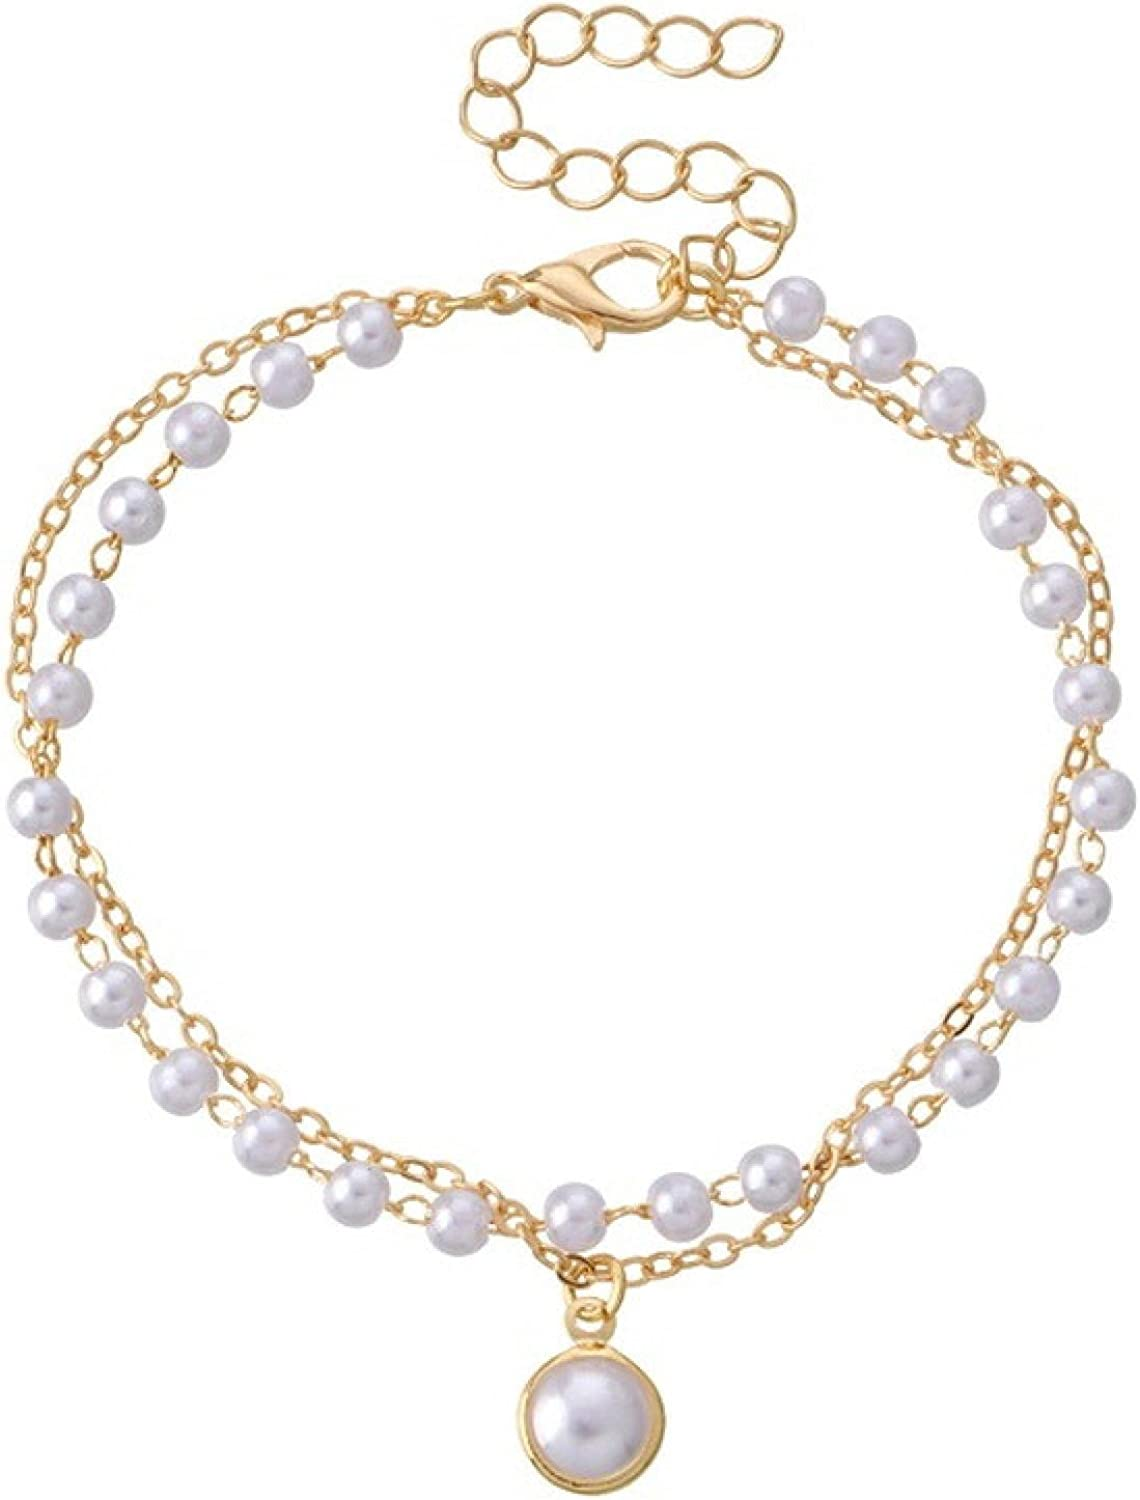 Animer and price revision Simple Imitation Pearl Adjustable safety Ins Tempe Multilayer Bracelets